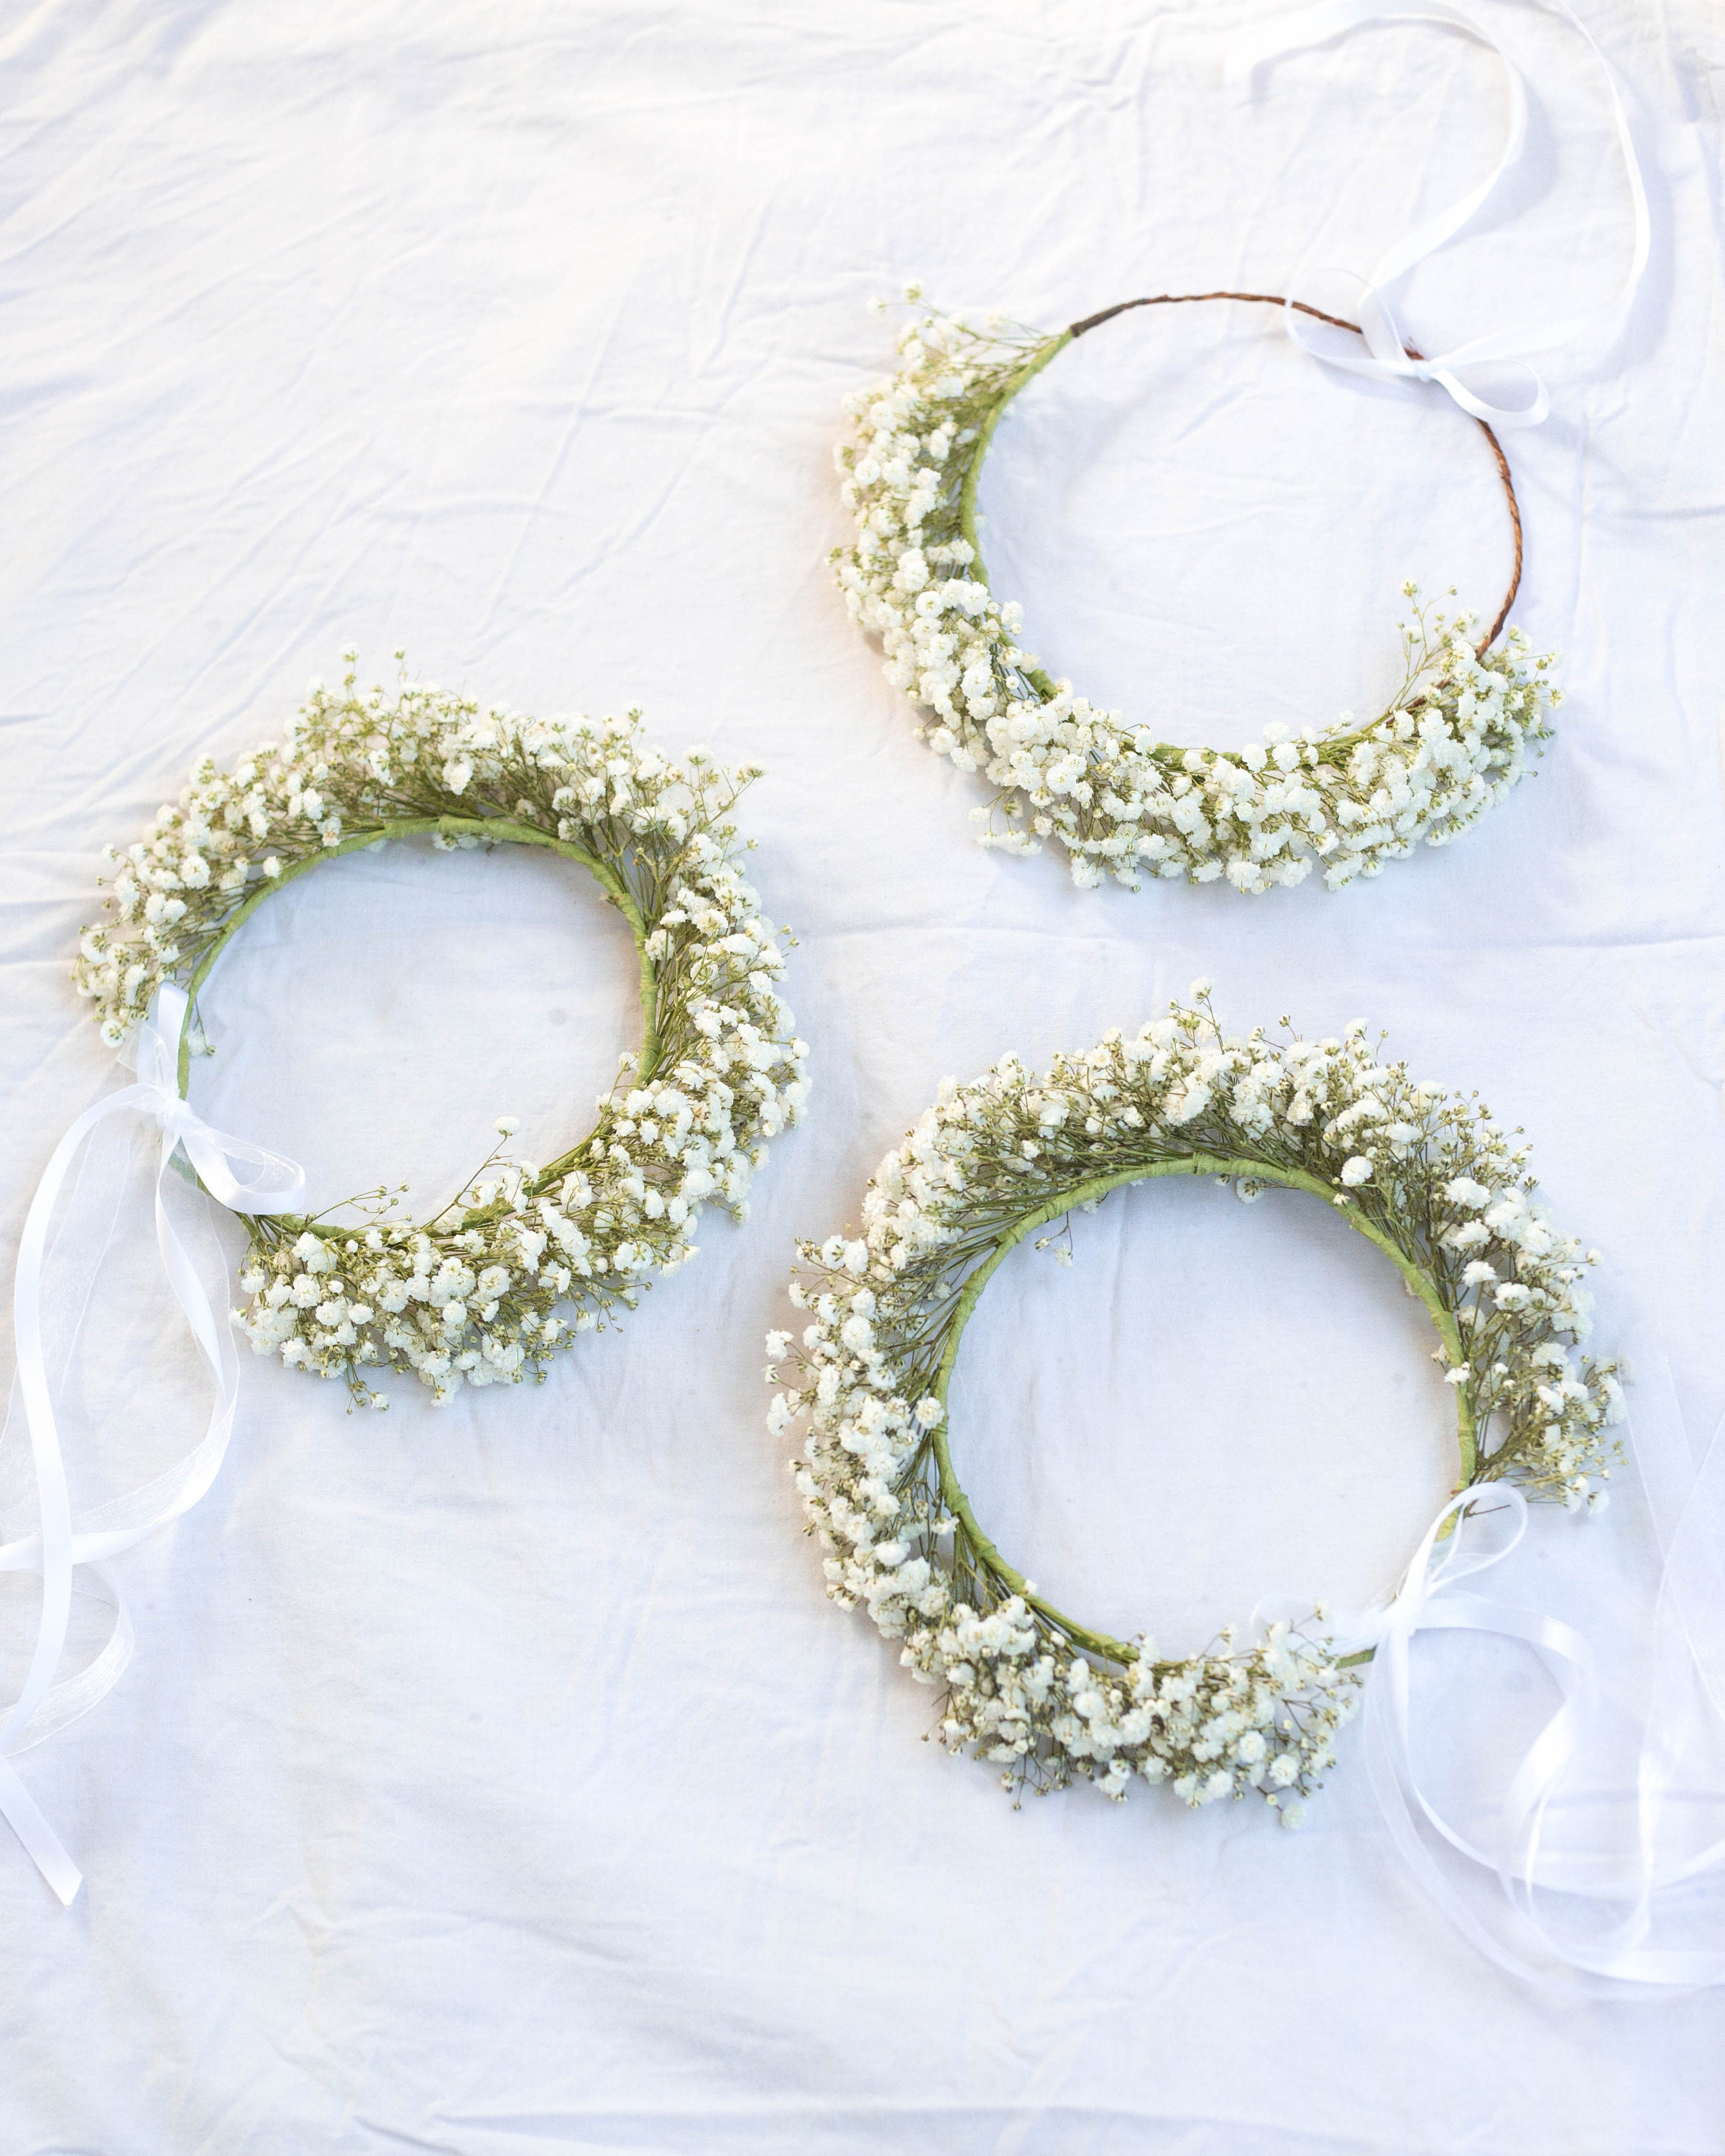 Babies breath flower crown made with real babys breath flowers babies breath flower crown made with real babys breath flowers dried babys breath floral halo photo props rustic crown best seller izmirmasajfo